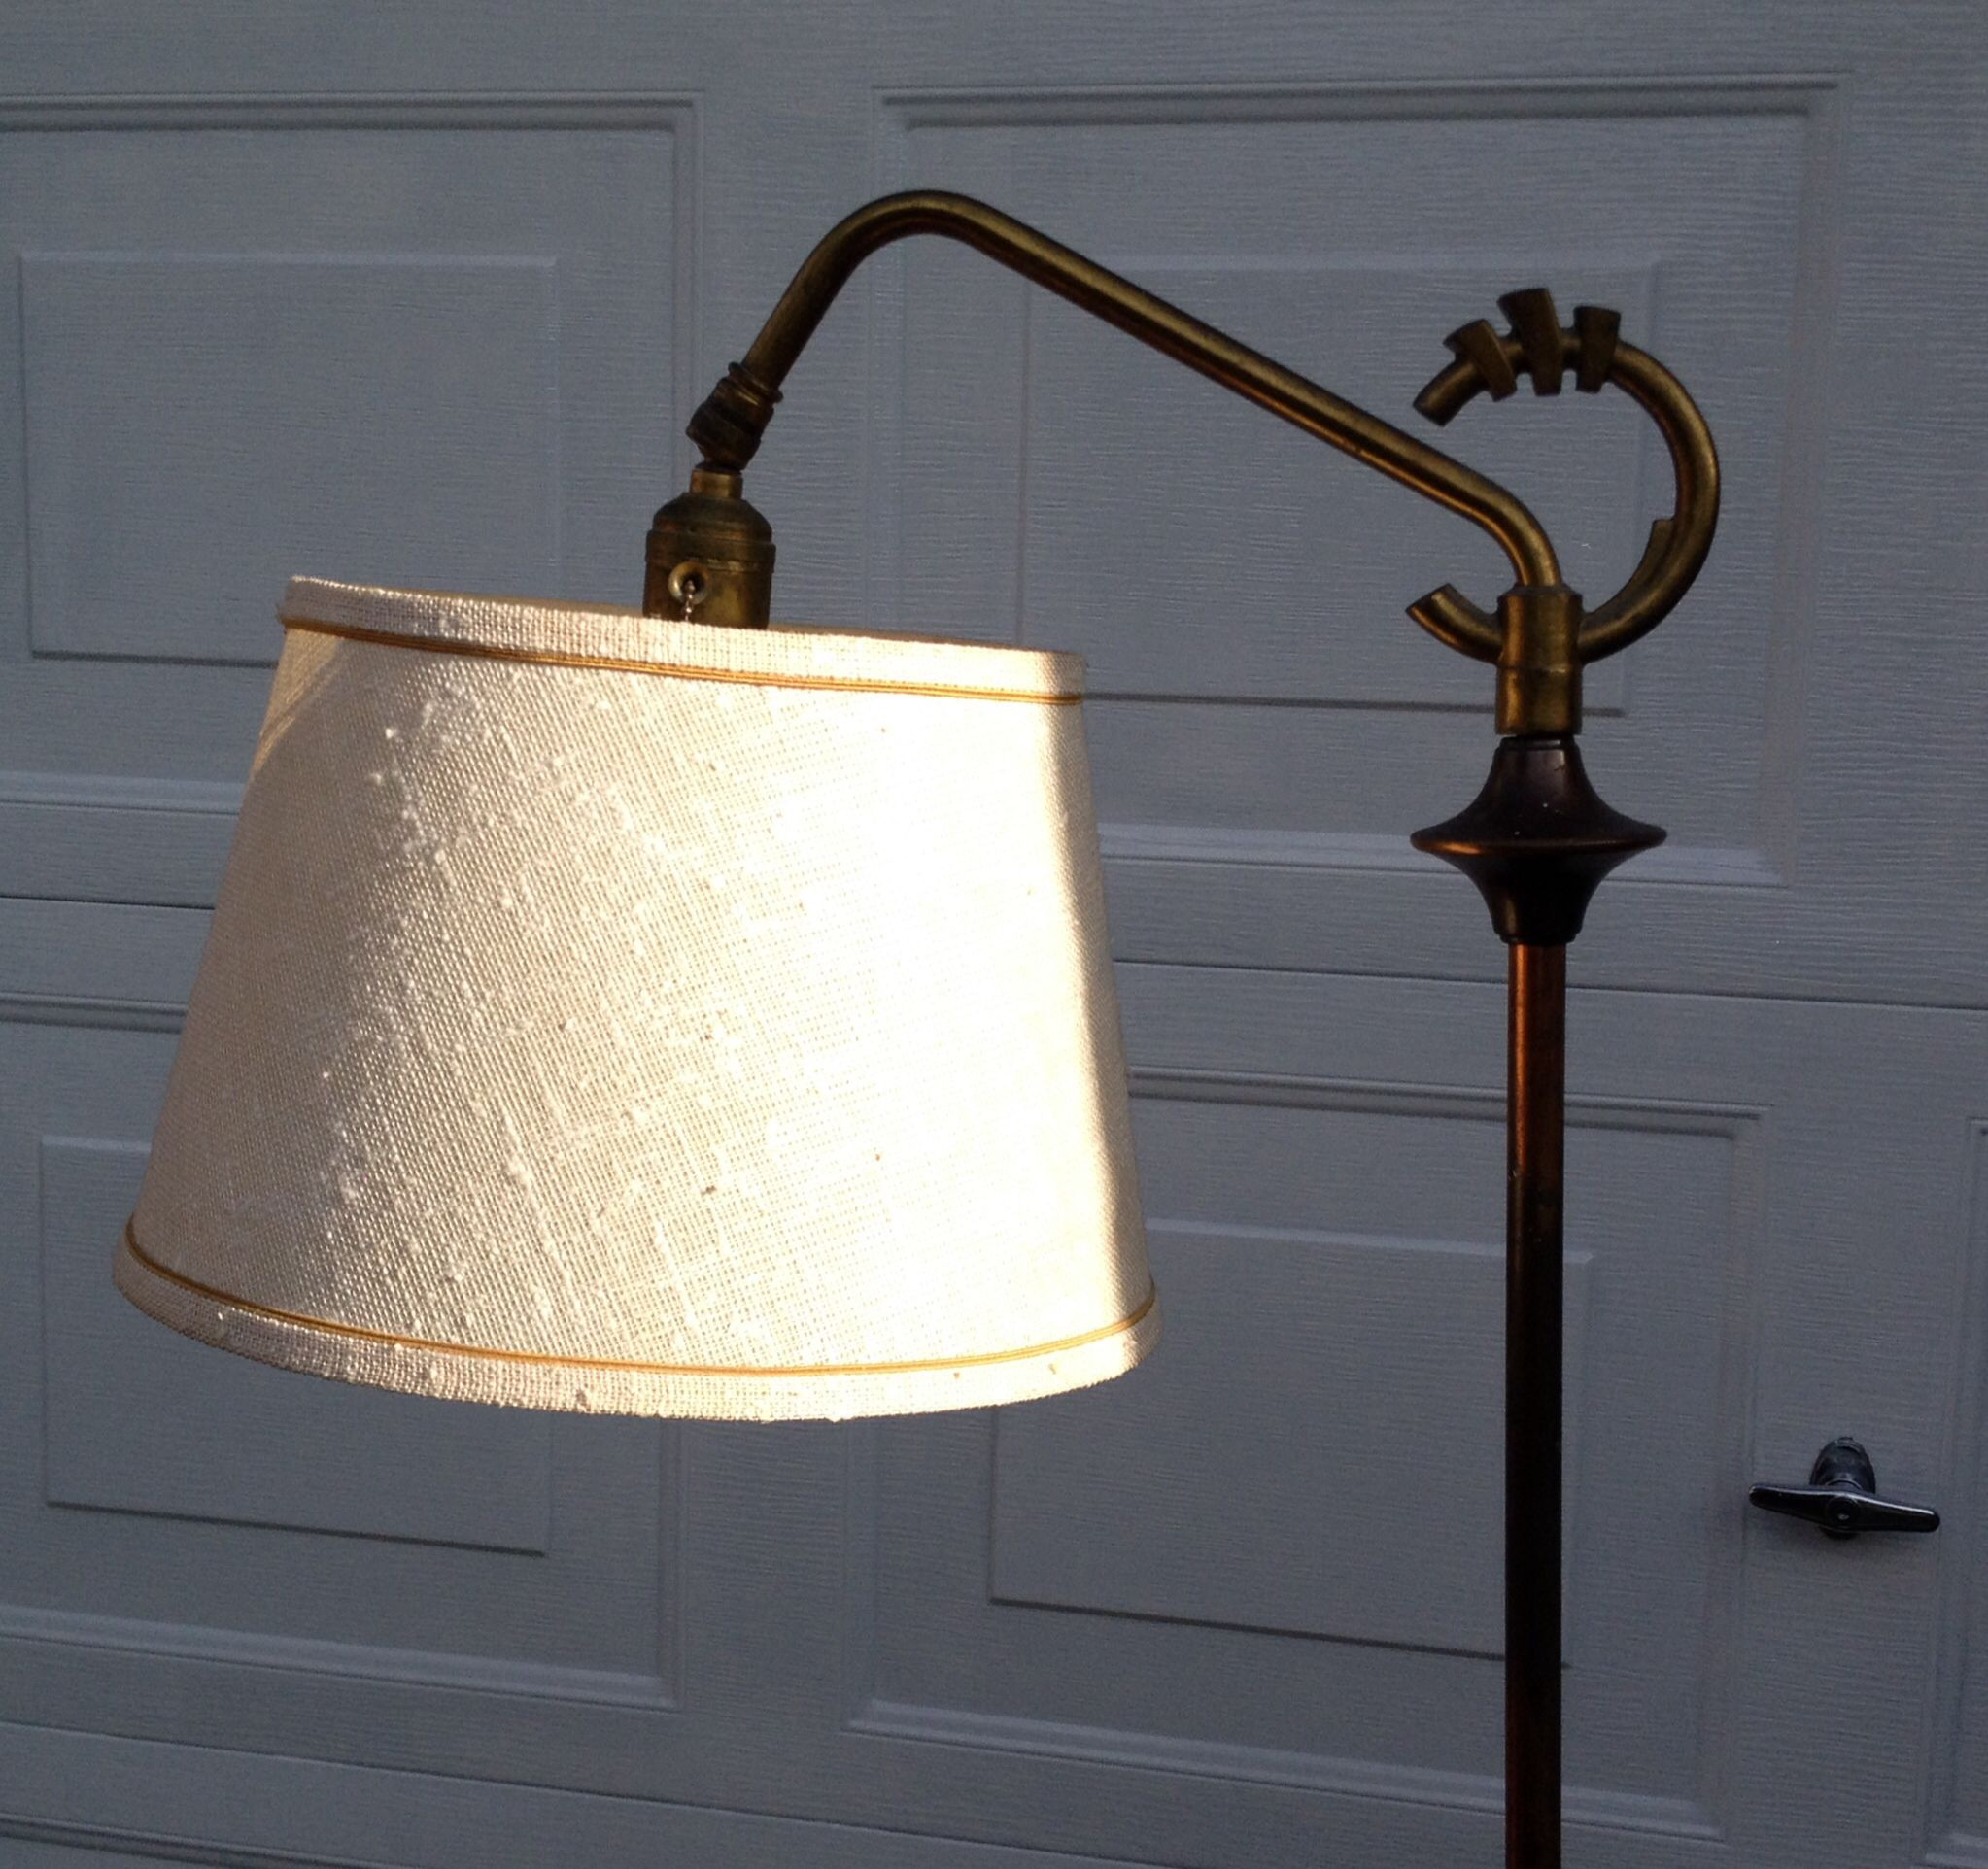 image p lamp new natural lampshade linen b shade supply product uno in drum view fitter window